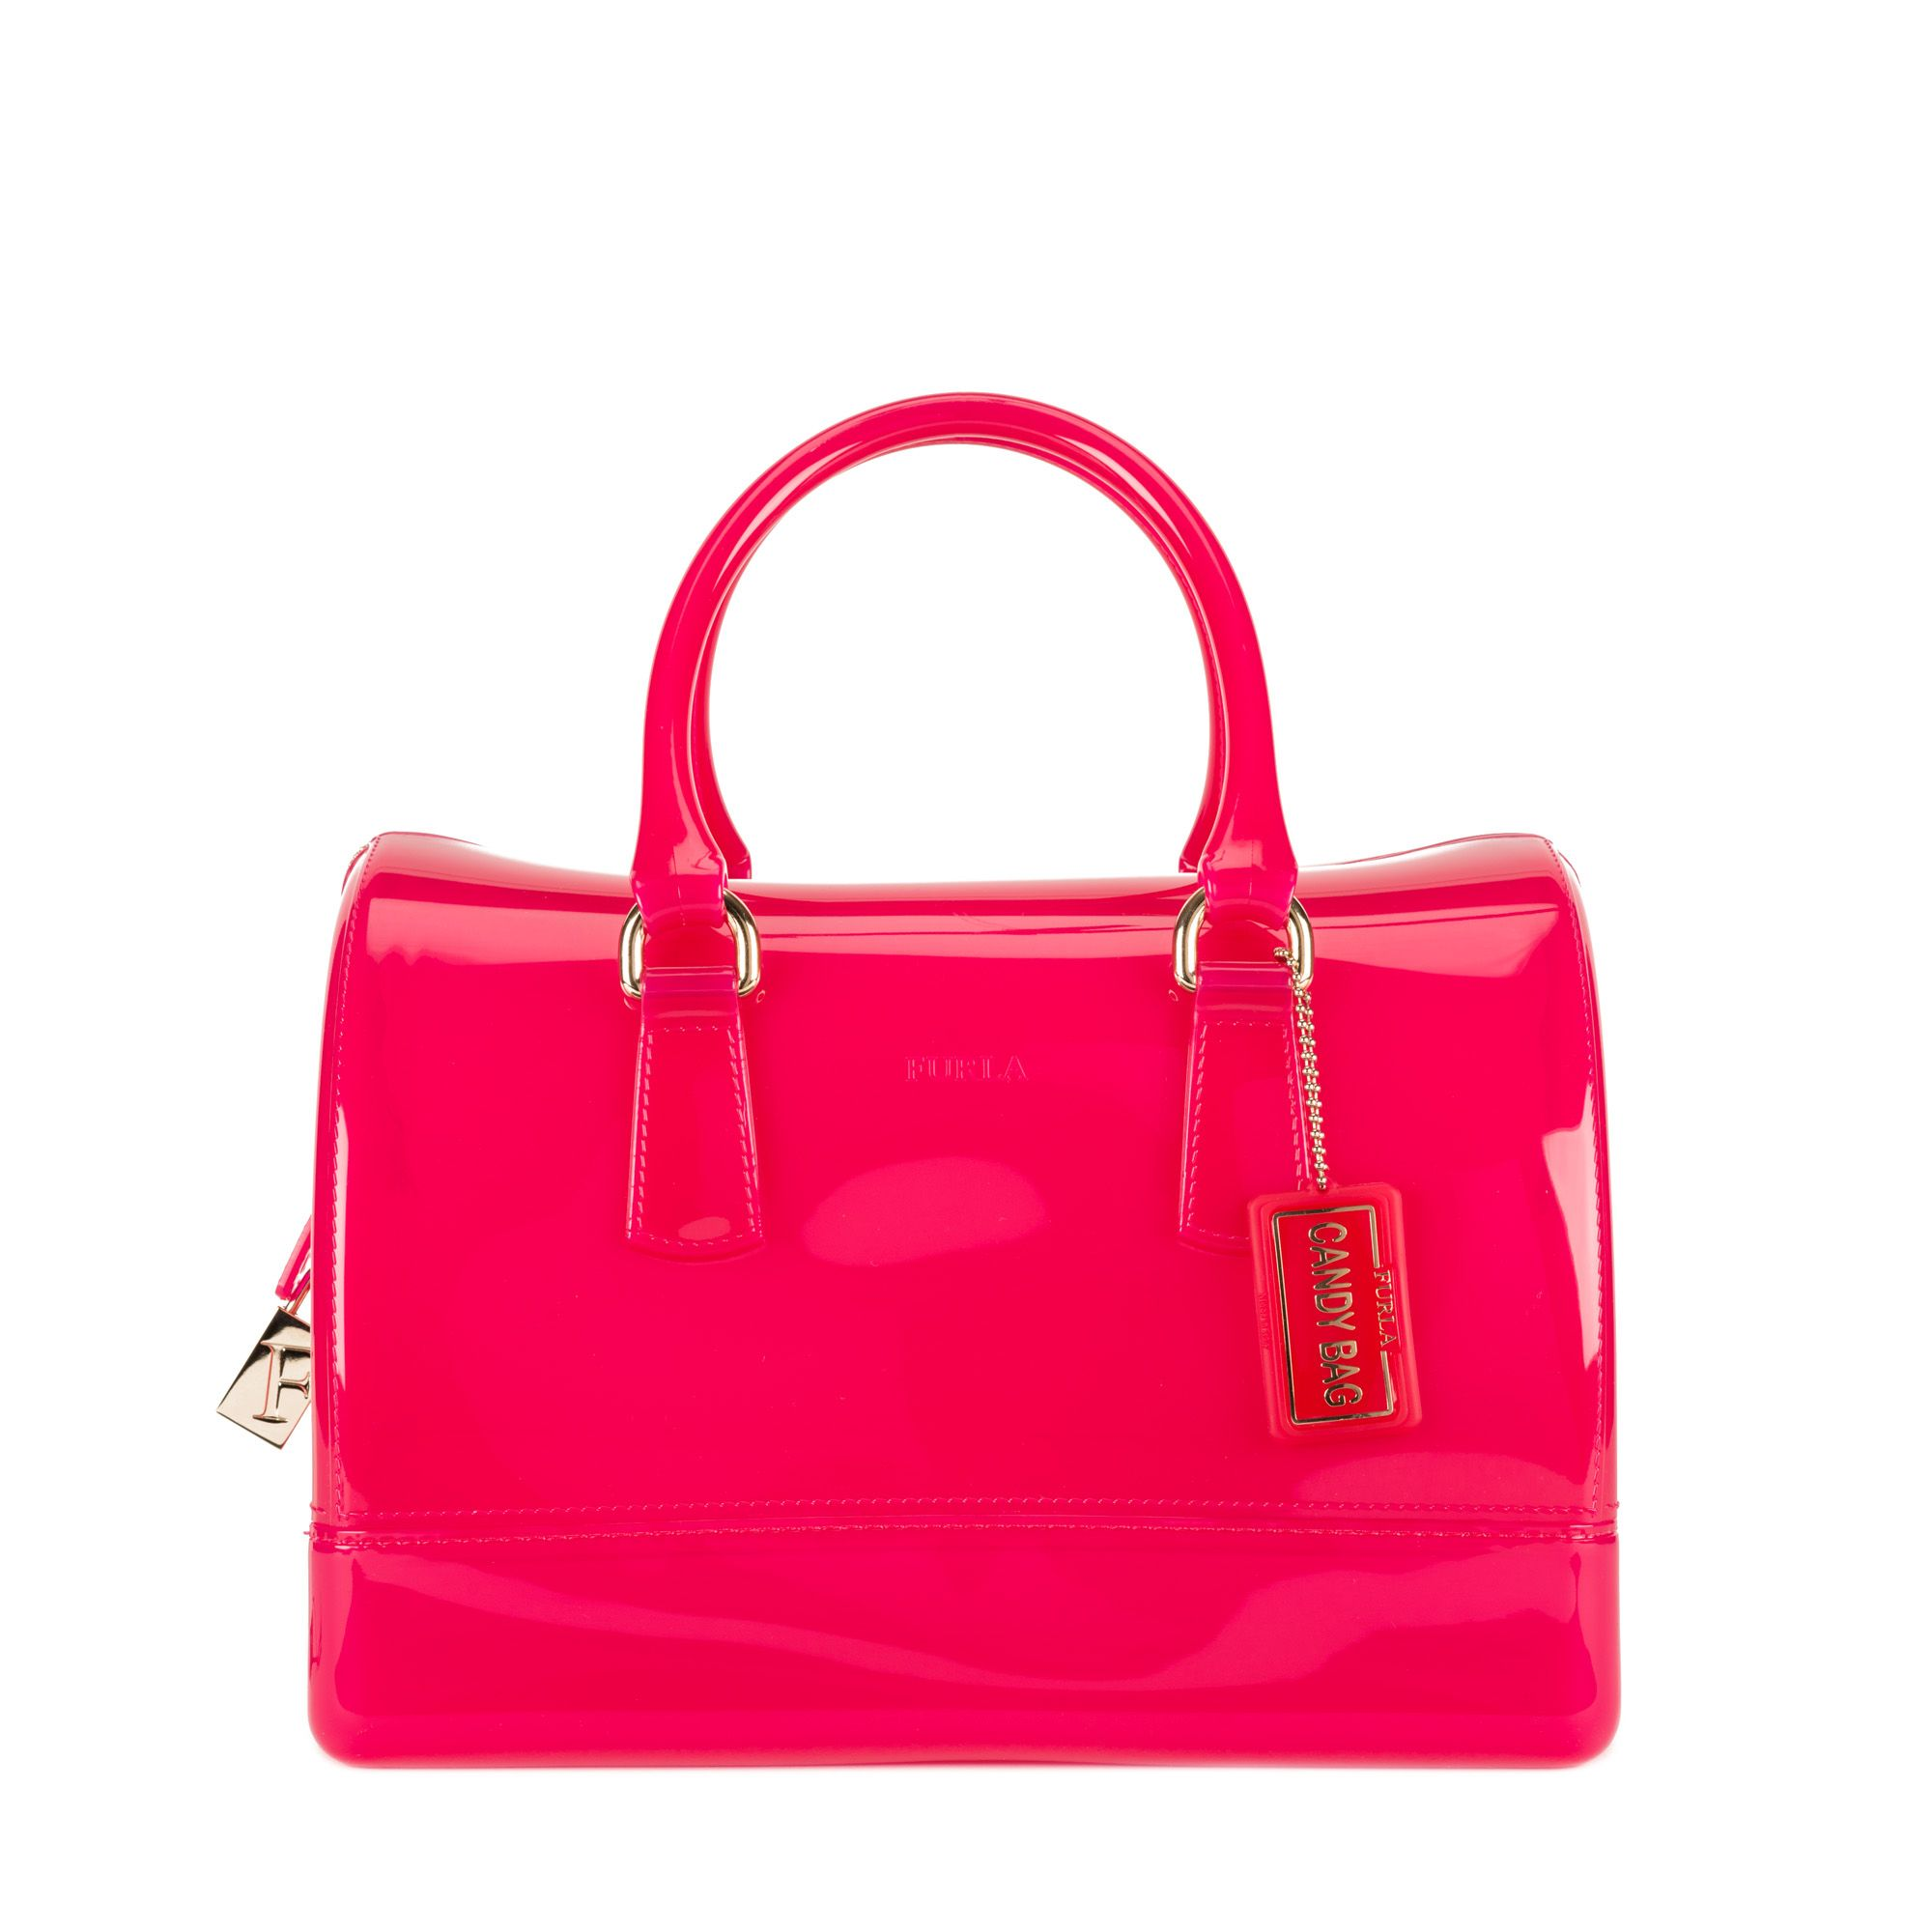 Candy furla bags recommendations to wear in summer in 2019